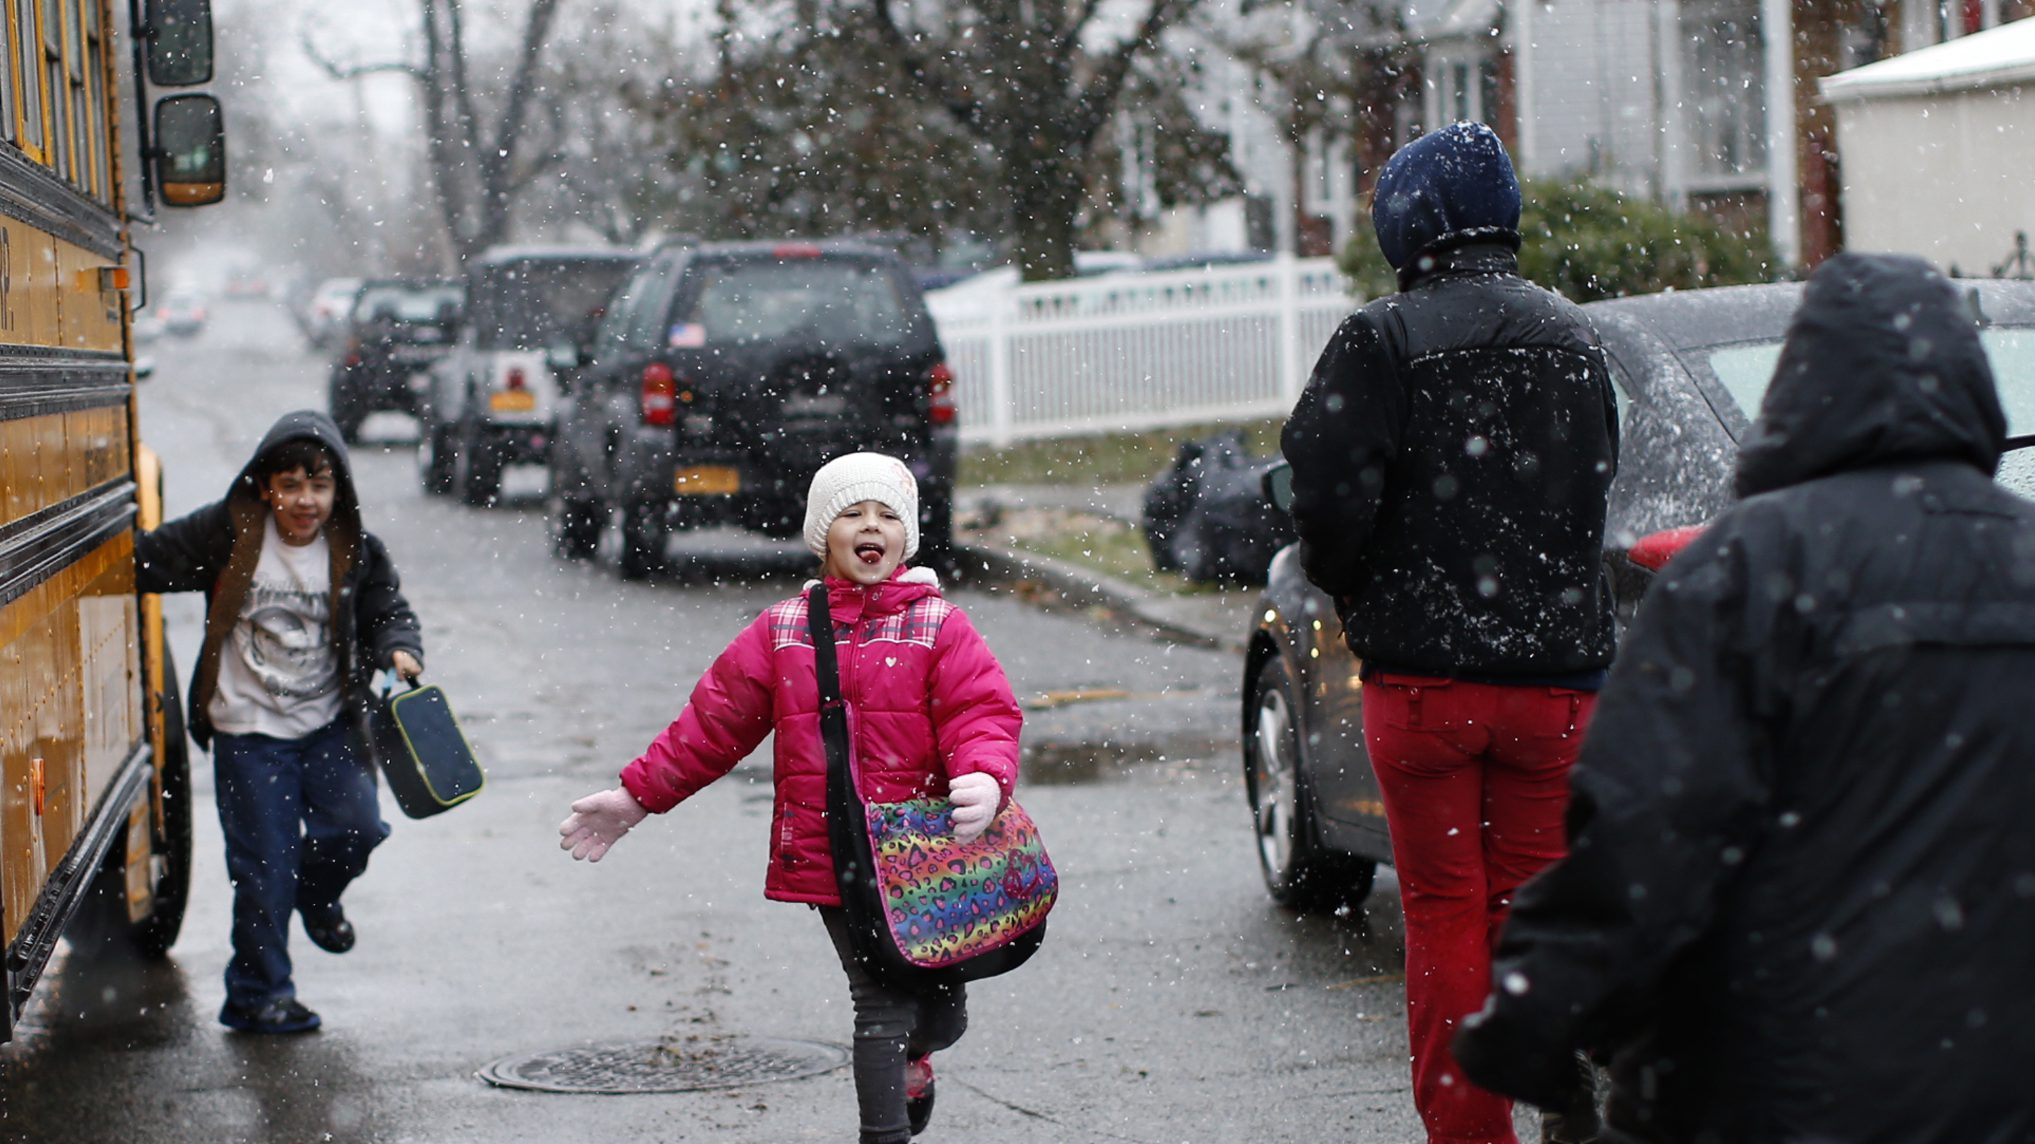 Children run to their parents after leaving the school bus in New Dorp section of the south shore of Staten Island, which was hard hit by Hurricane Sandy in New York City, November 7, 2012. A potent Nor'easter, or Northeaster storm, descended on the area Wednesday where many low lying shore areas including Midland Beach were under evacuation orders as the storm packing high winds rain and snow approached the New York area just over a week after Hurricane Sandy.  REUTERS/Mike Segar   (UNITED STATES - Tags: DISASTER ENVIRONMENT) - GM1E8B80I4801